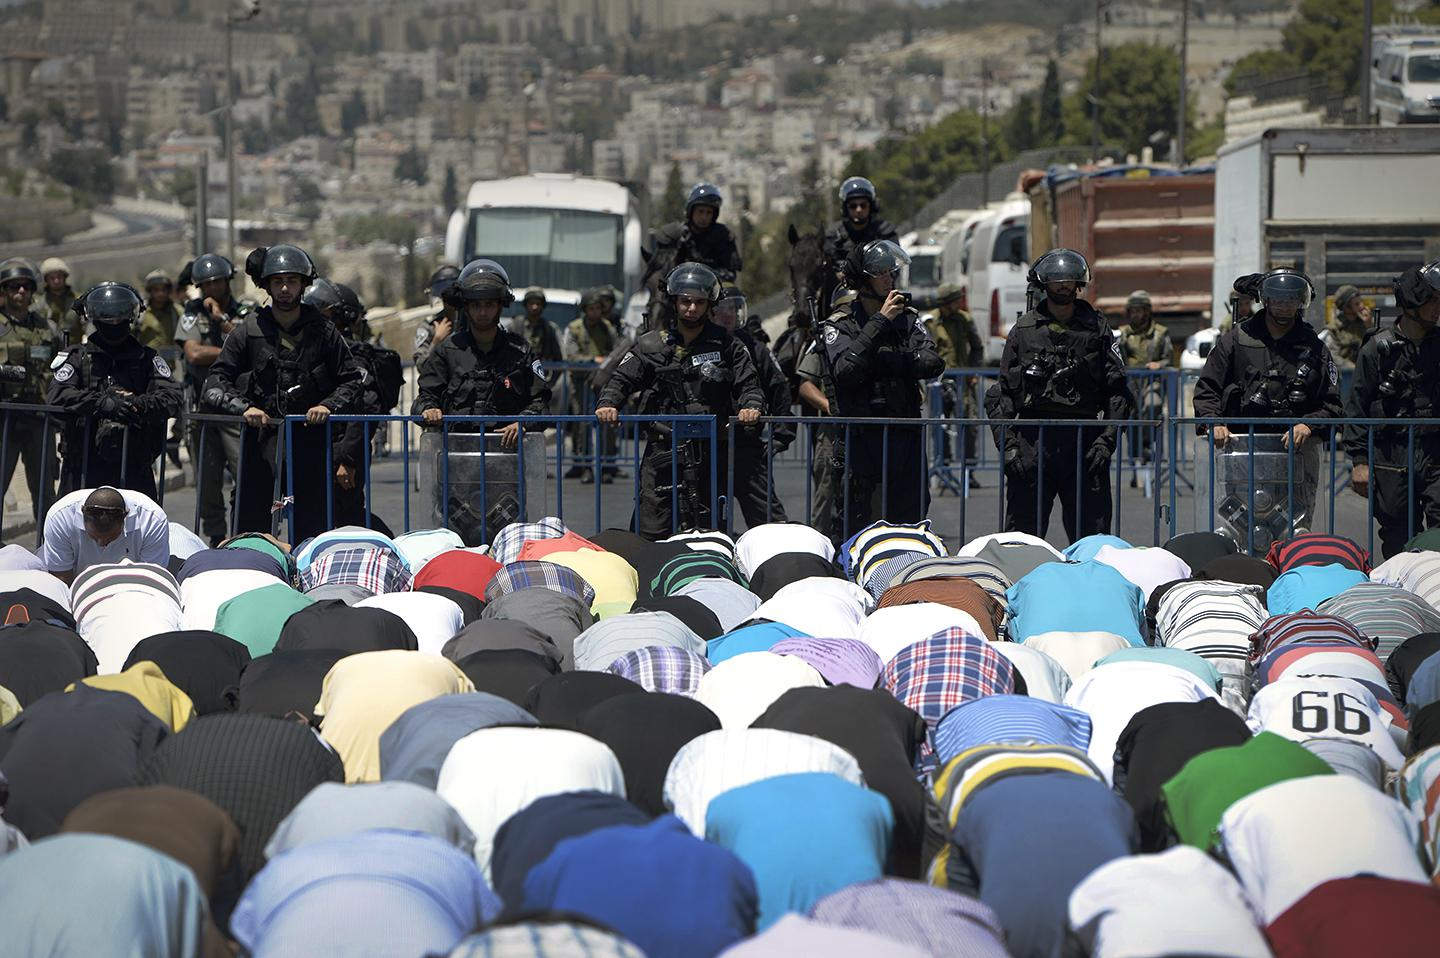 Palestinians perform Friday prayer on the street, outside the Al-Aqsa Mosque after Israeli police.